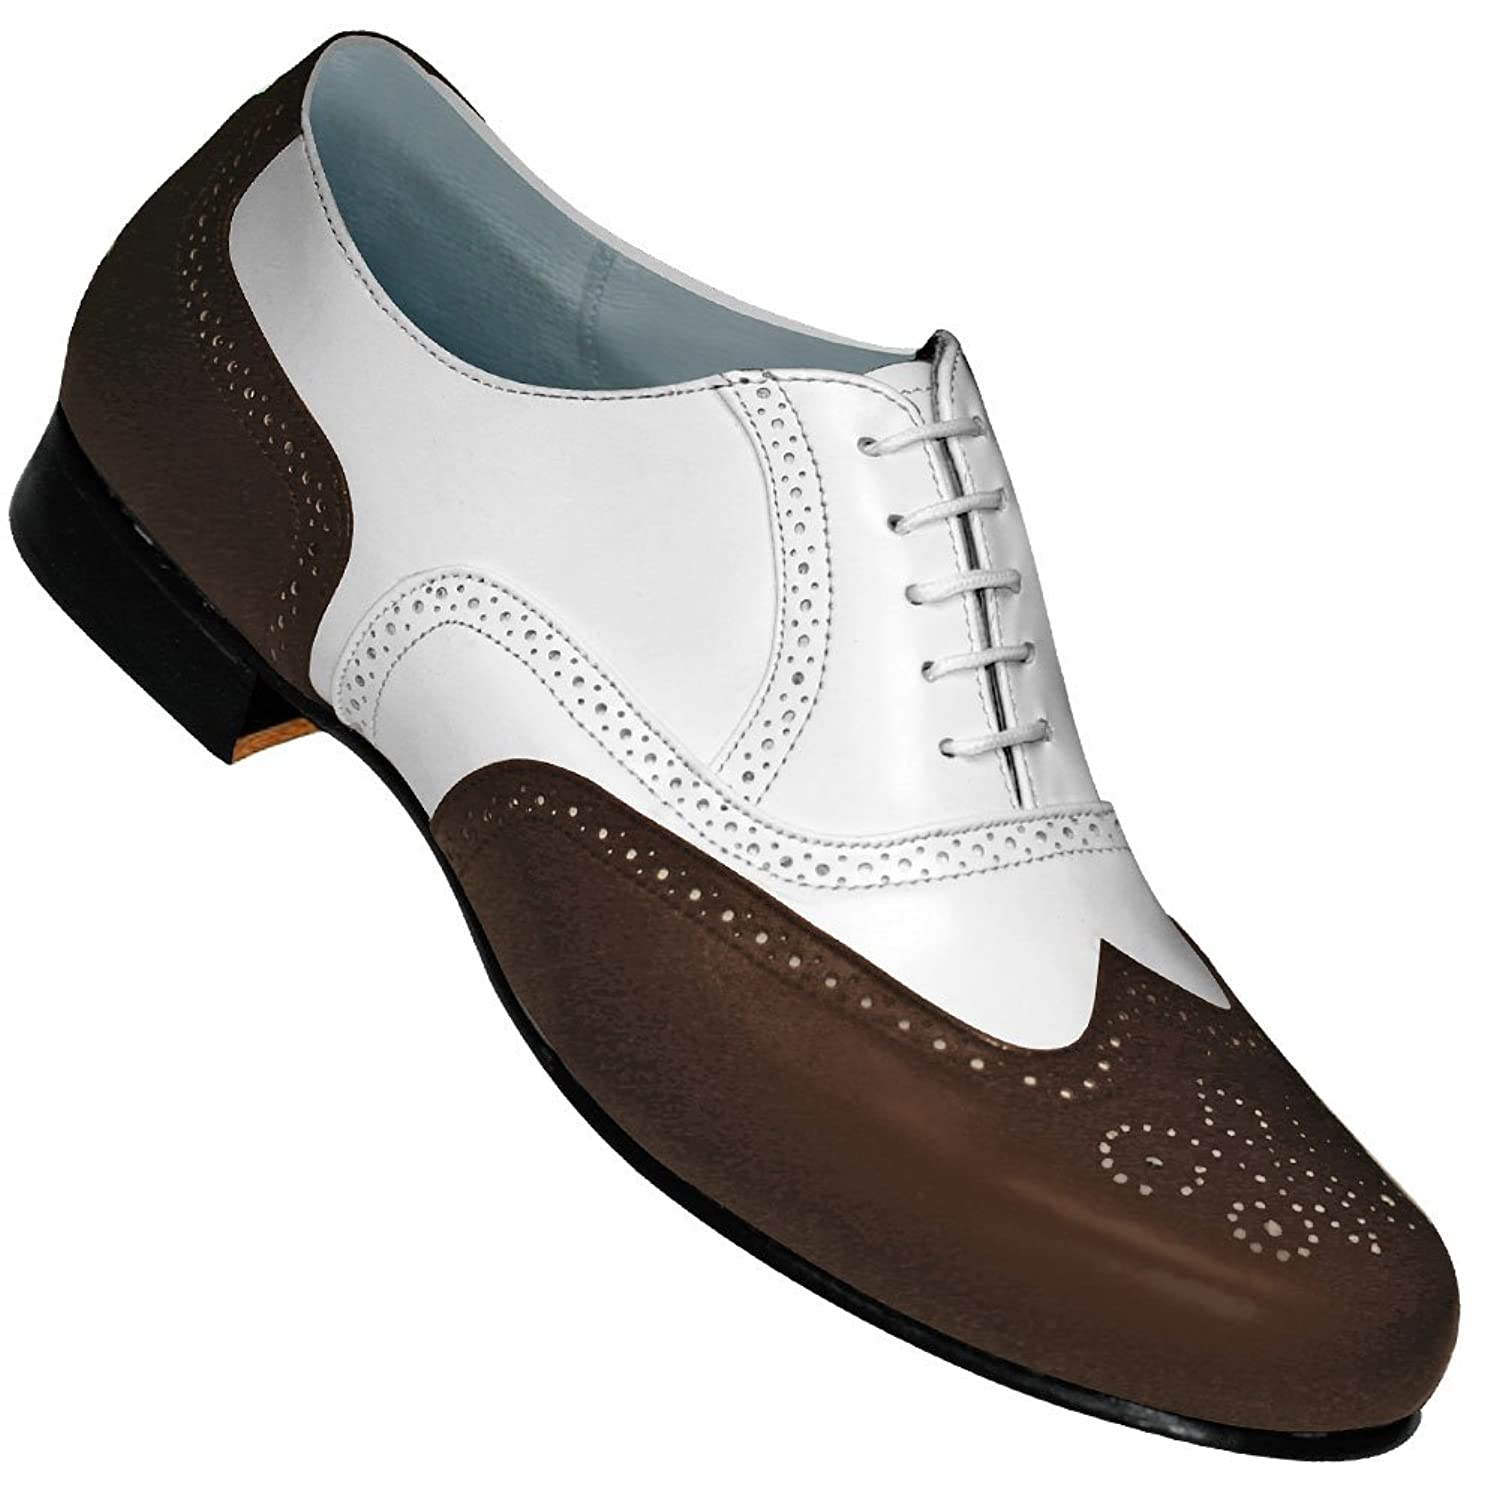 Retro Style Dance Shoes Aris Allen Mens 1930s Brown and White Spat Style Wingtip Dance Shoe $48.95 AT vintagedancer.com